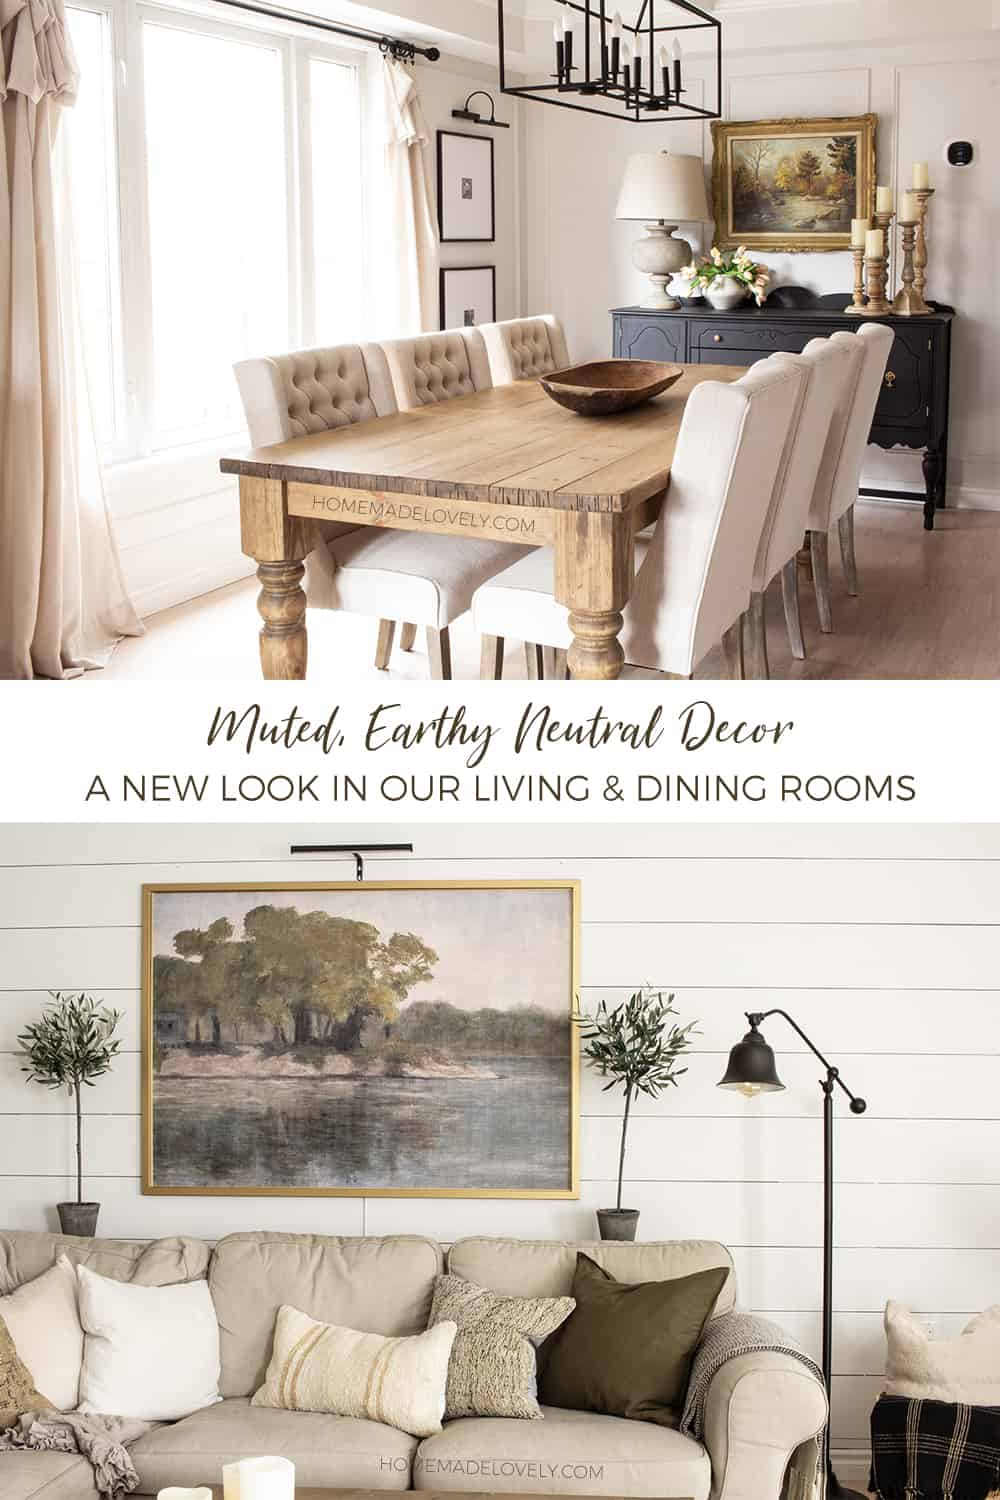 Muted, Earthy Neutral Decor - A New Look in Our Living & Dining Rooms